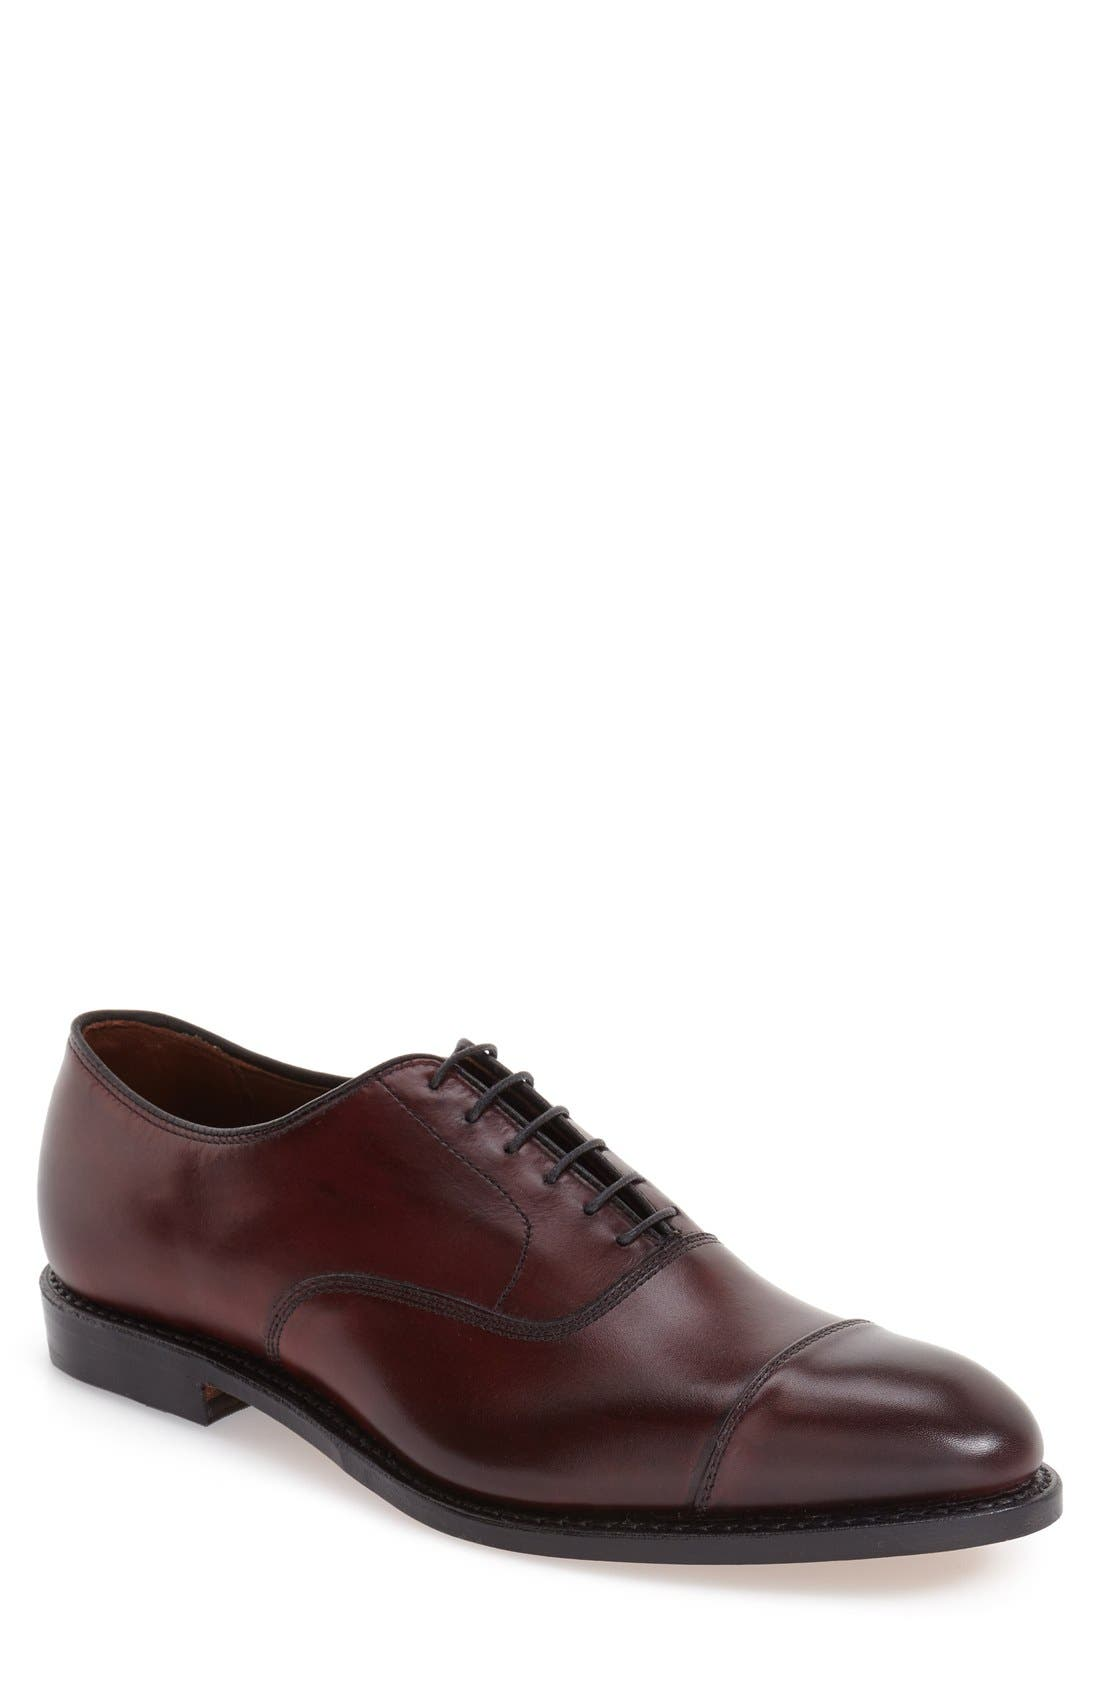 Alternate Image 1 Selected - Allen Edmonds 'Park Avenue' Cap Toe Oxford (Men)